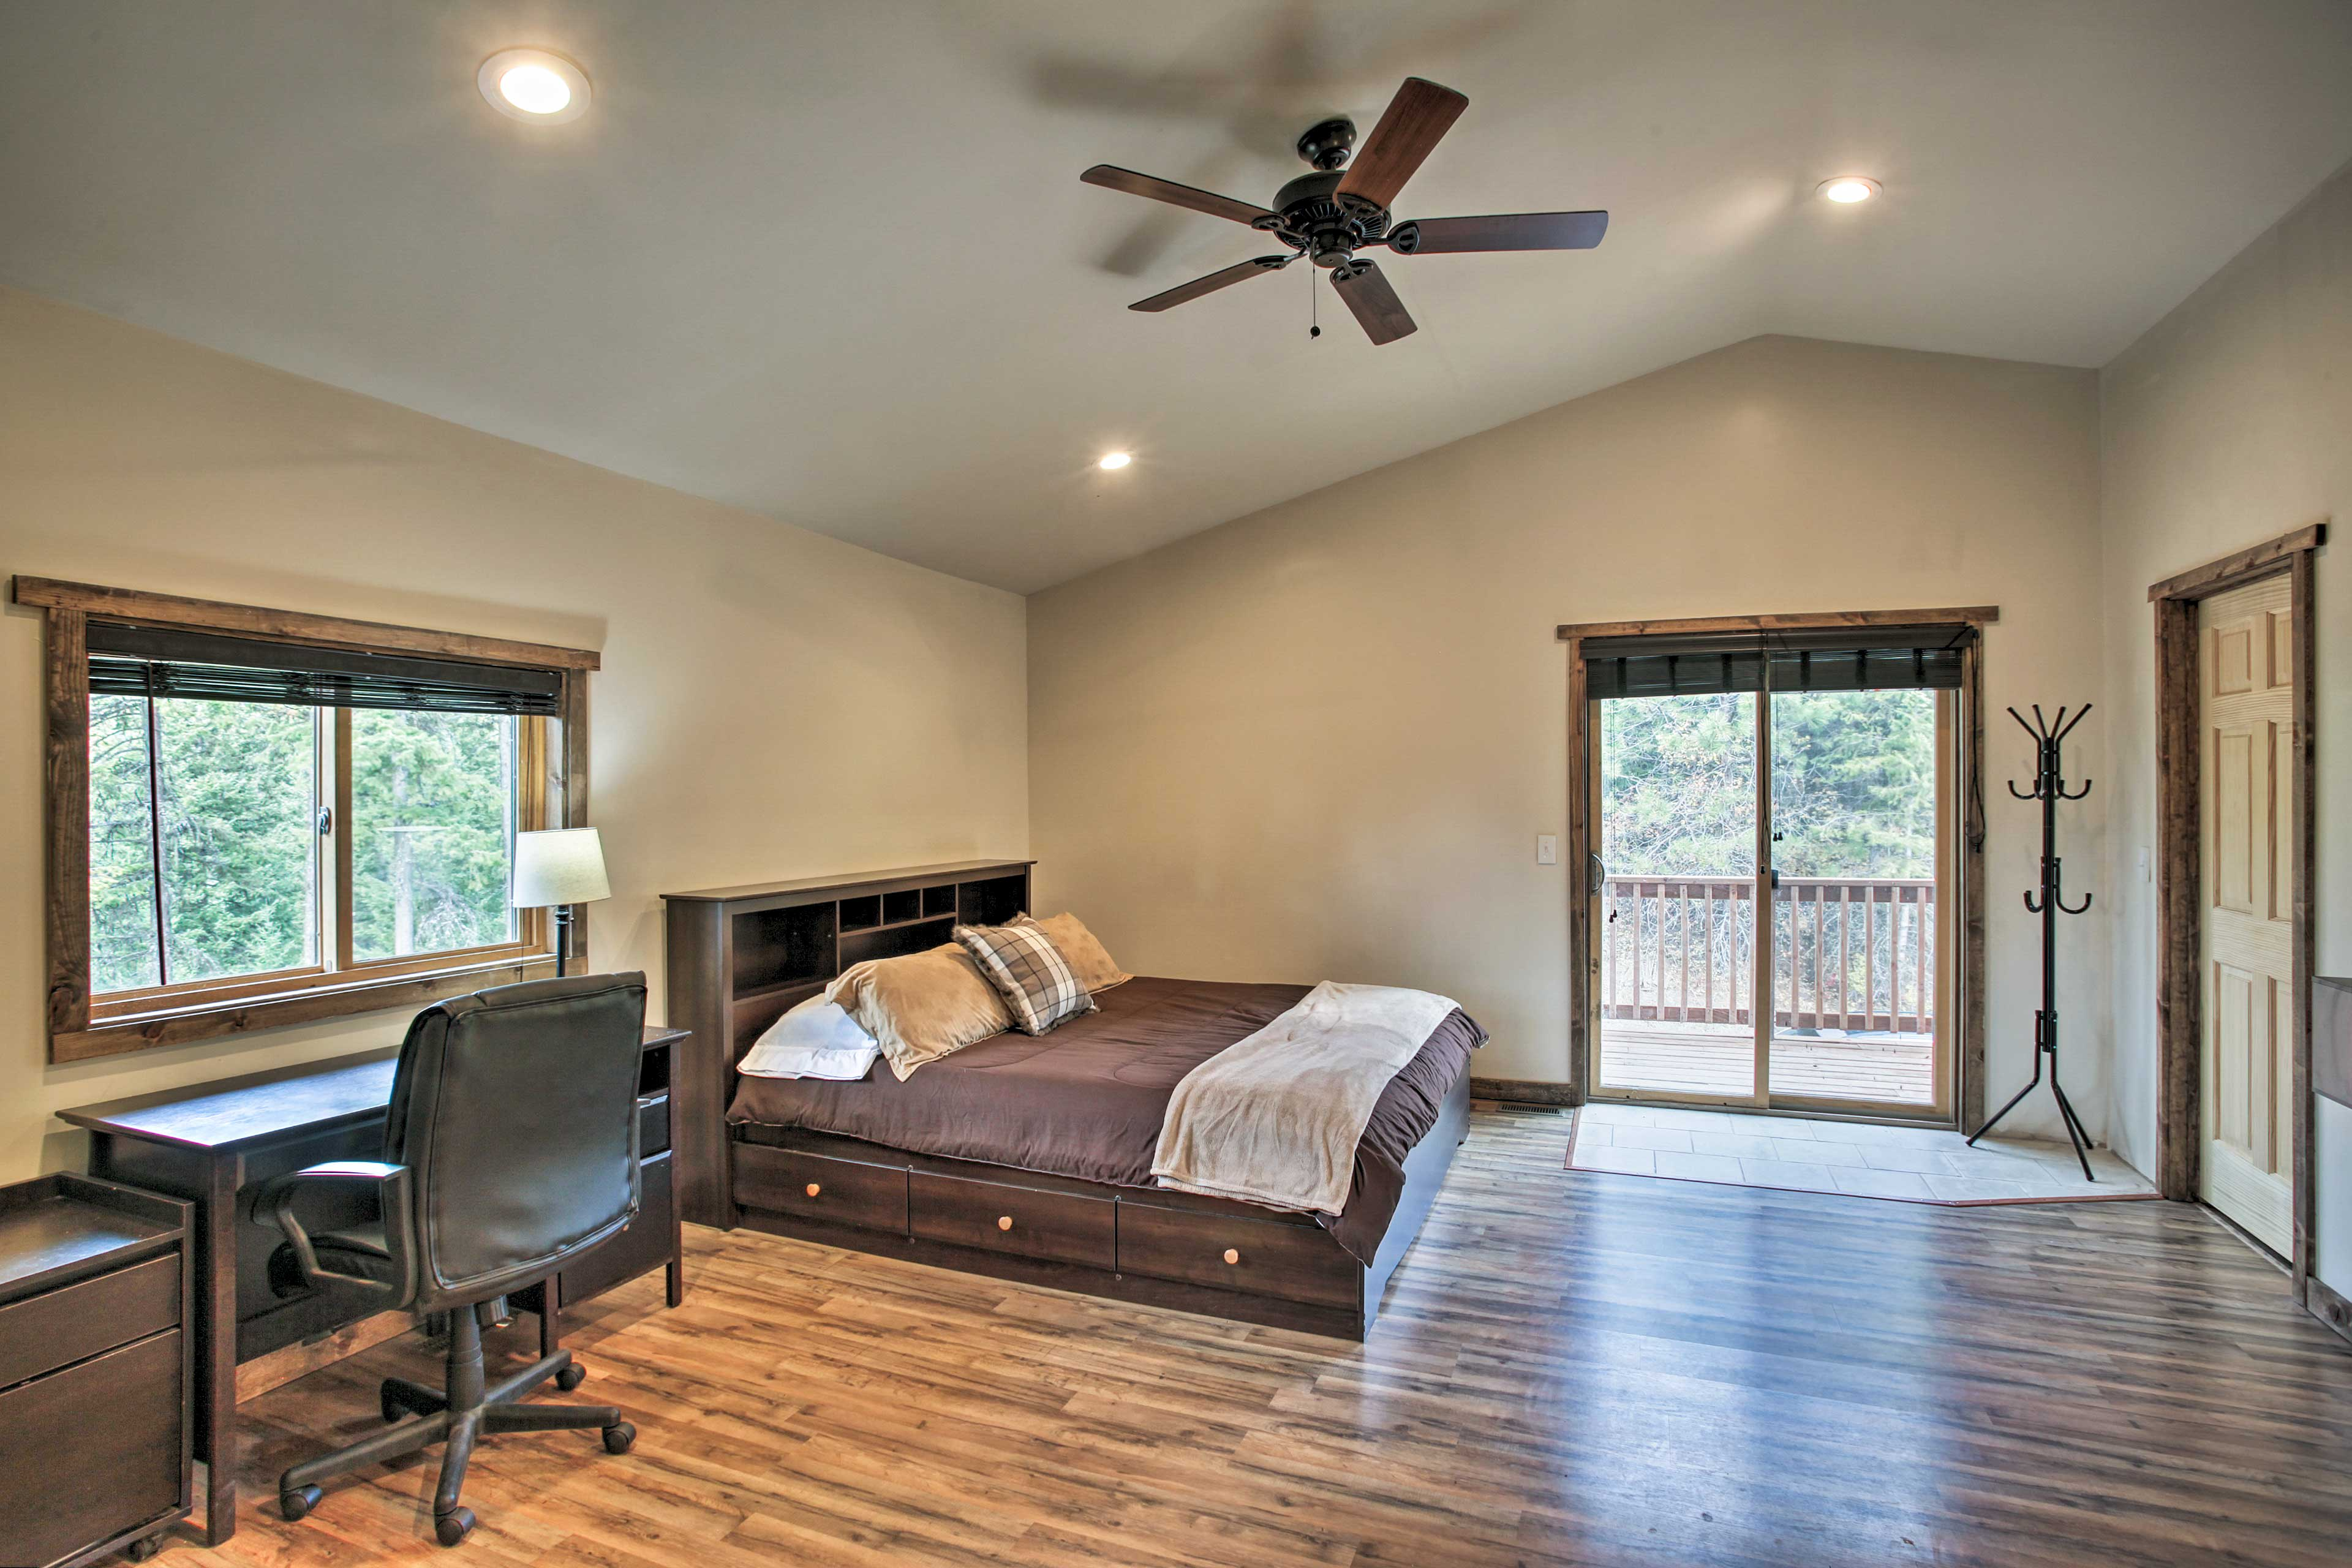 Take solace in one of 3 bedrooms for a peaceful slumber.